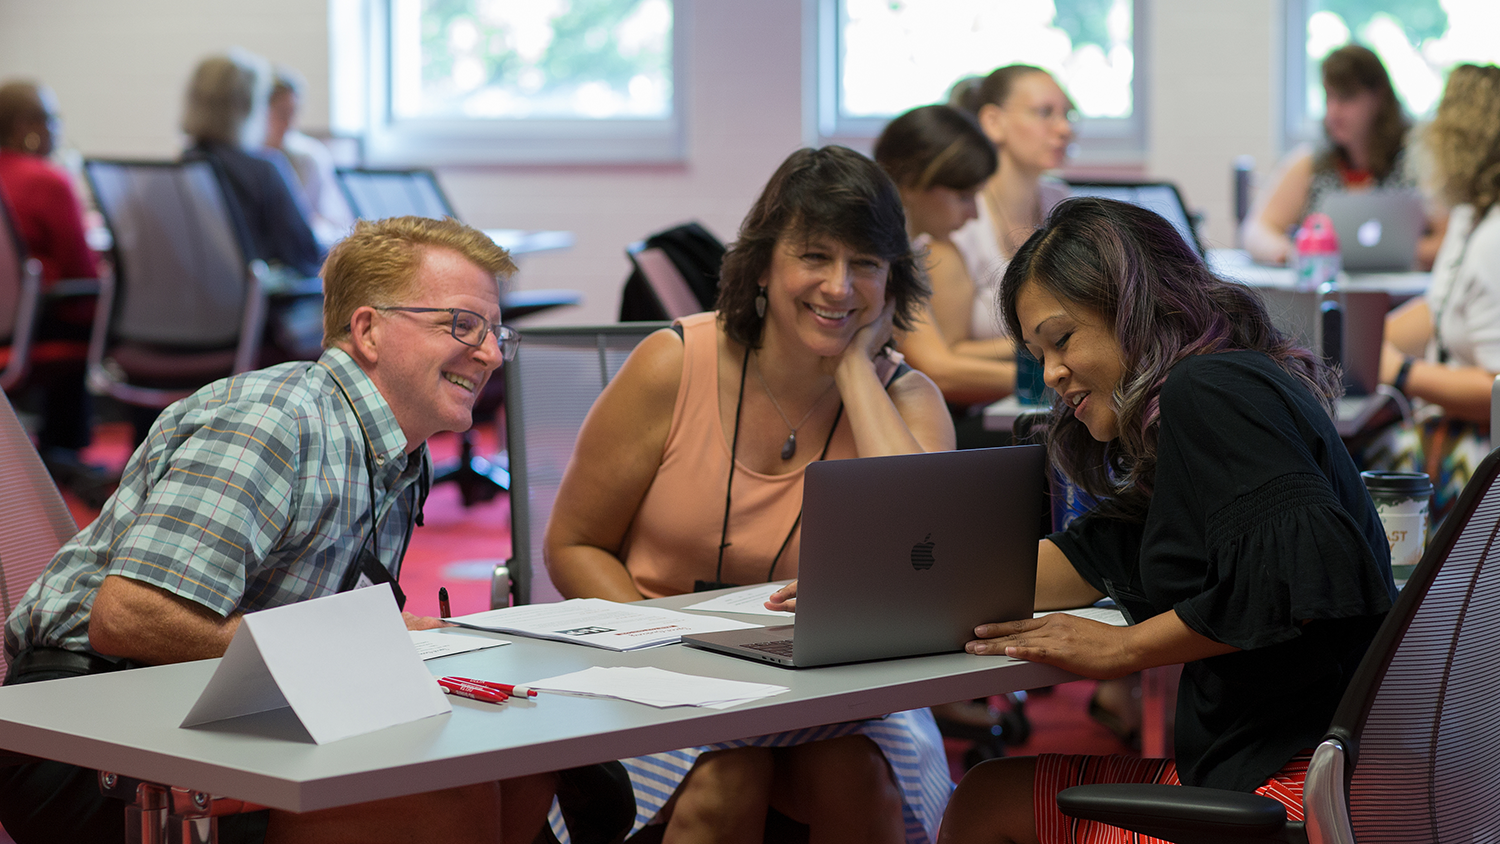 Arlene Mendoza-Moran (right) works with faculty at the 2018 Summer Shorts in Instructional Technologies program. Mendoza-Moran and faculty are working on a laptop at a desk.